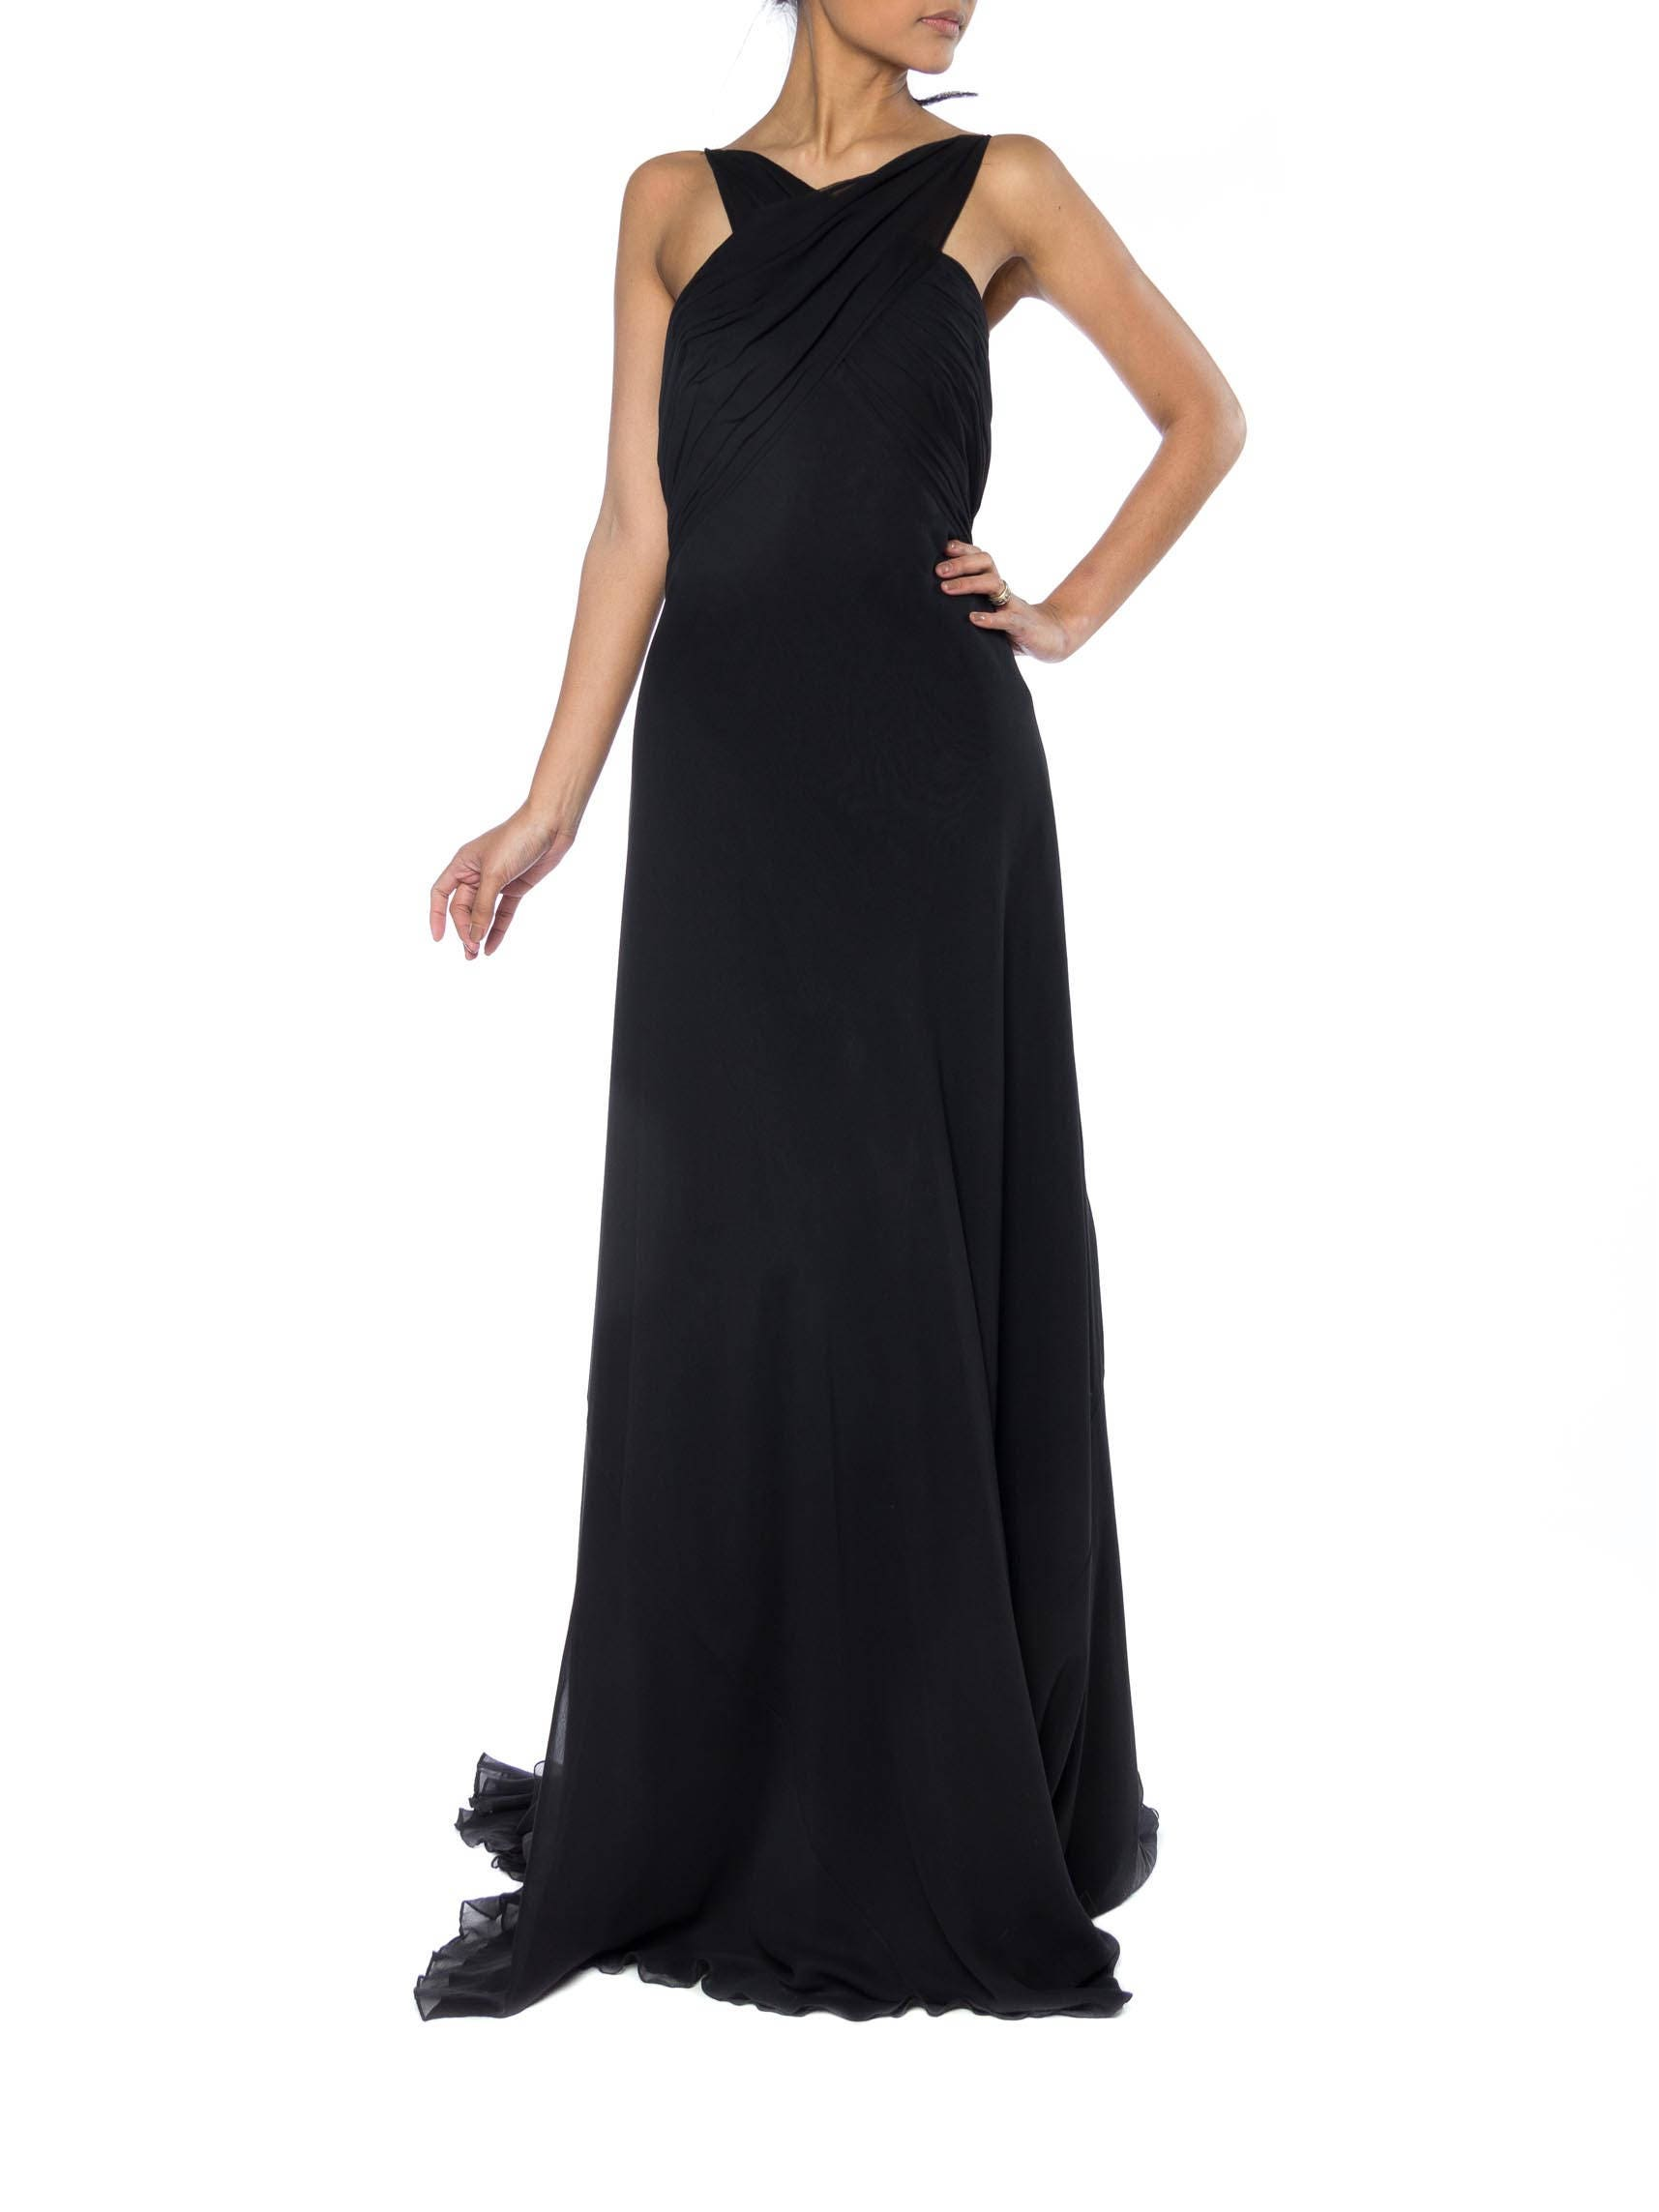 Backless Bias Cut Chiffon Gown With Train Size: 4-6